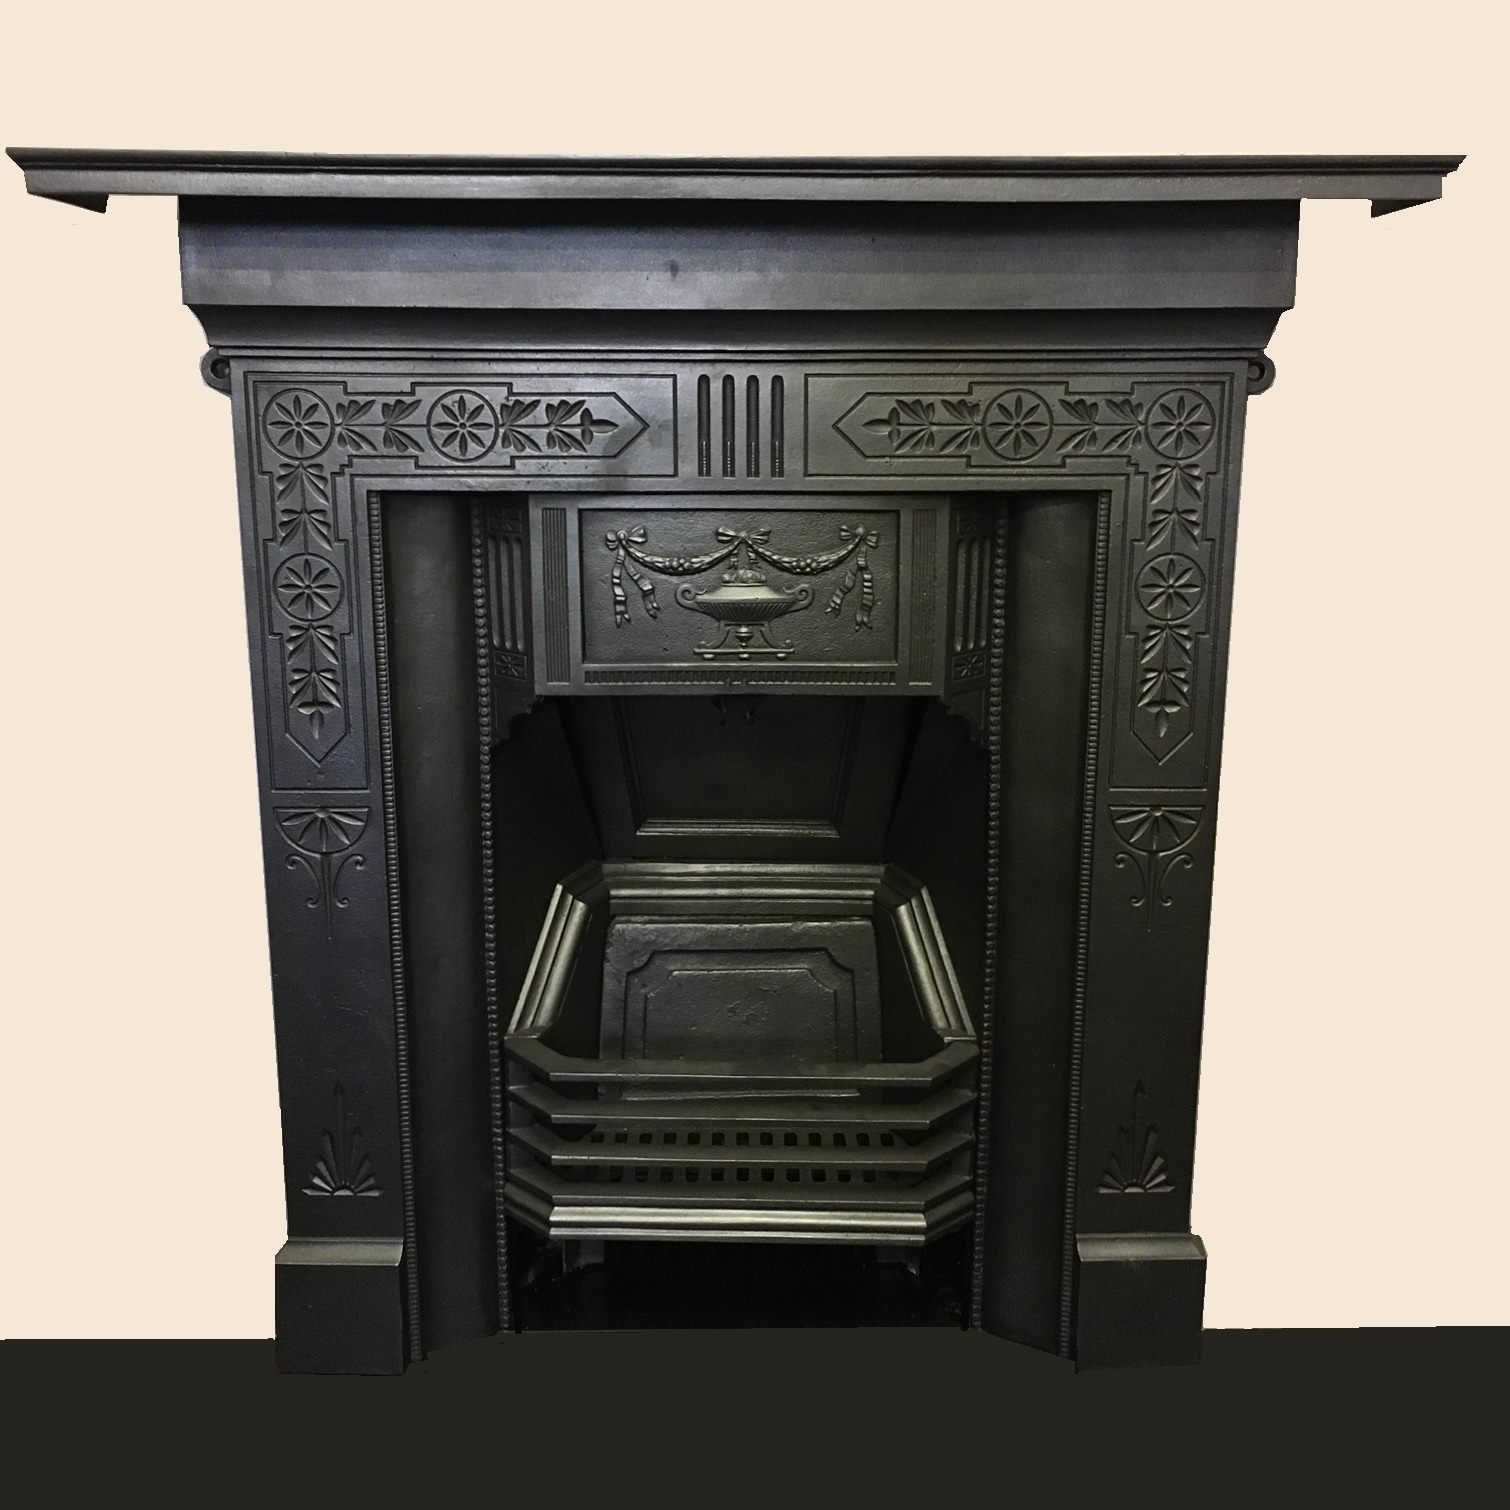 Antique victorian bedroom fireplace bc072 olde worlde Victorian fireplace restoration